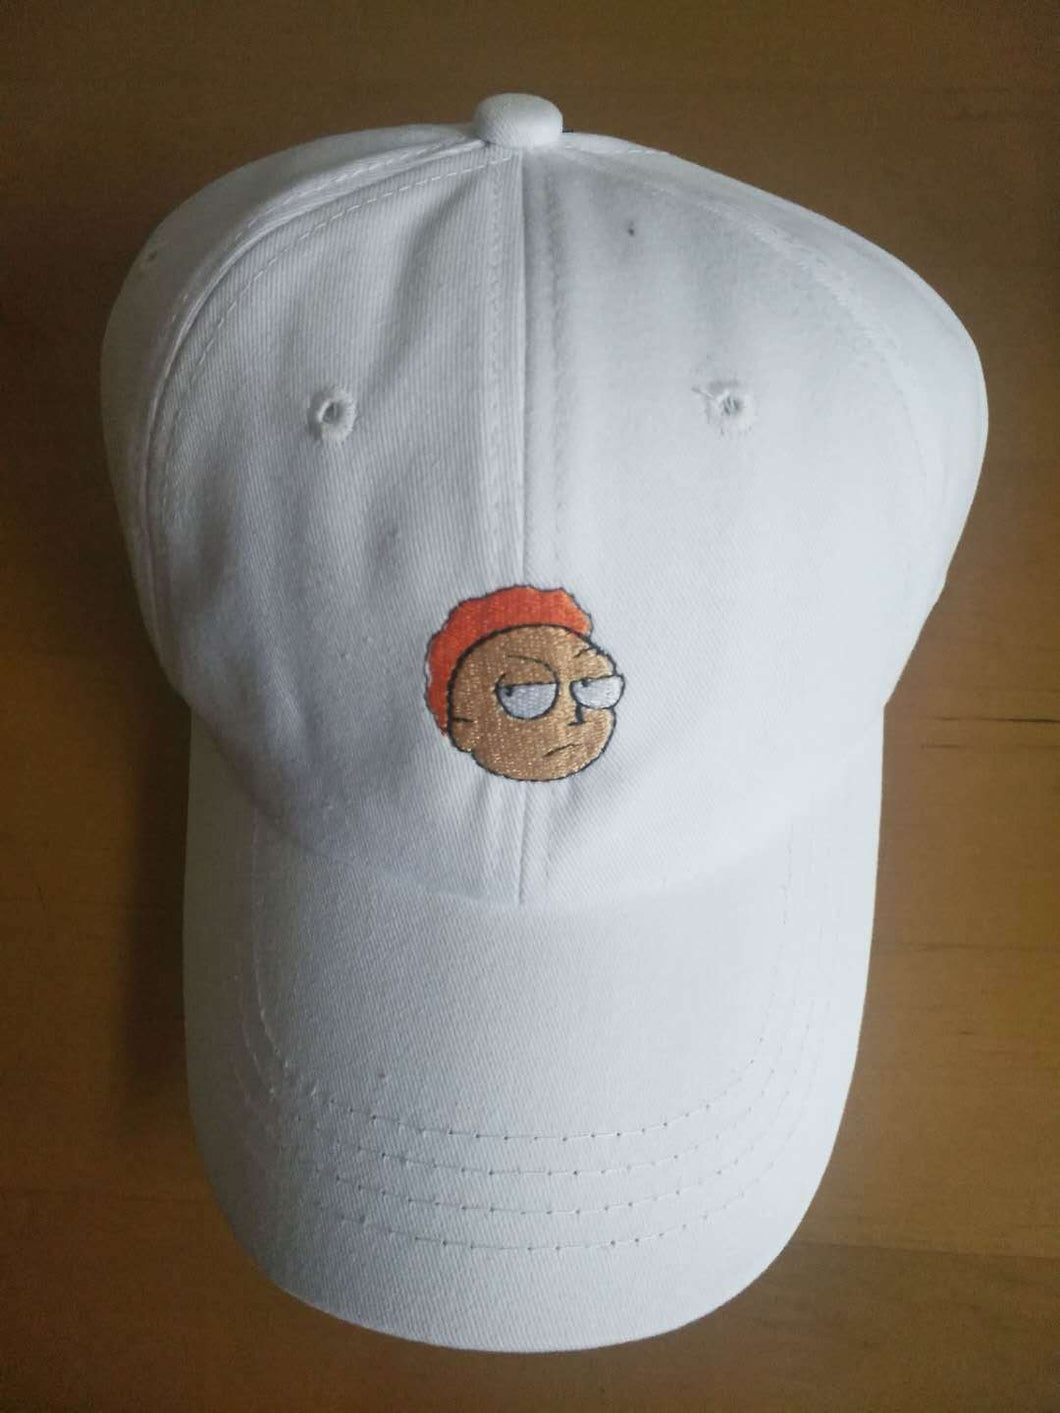 2018 New Khaki Hat Crazy Rick Baseball Cap American Anime Cot Embroidery Snapback Anime Lovers Cap Men Women